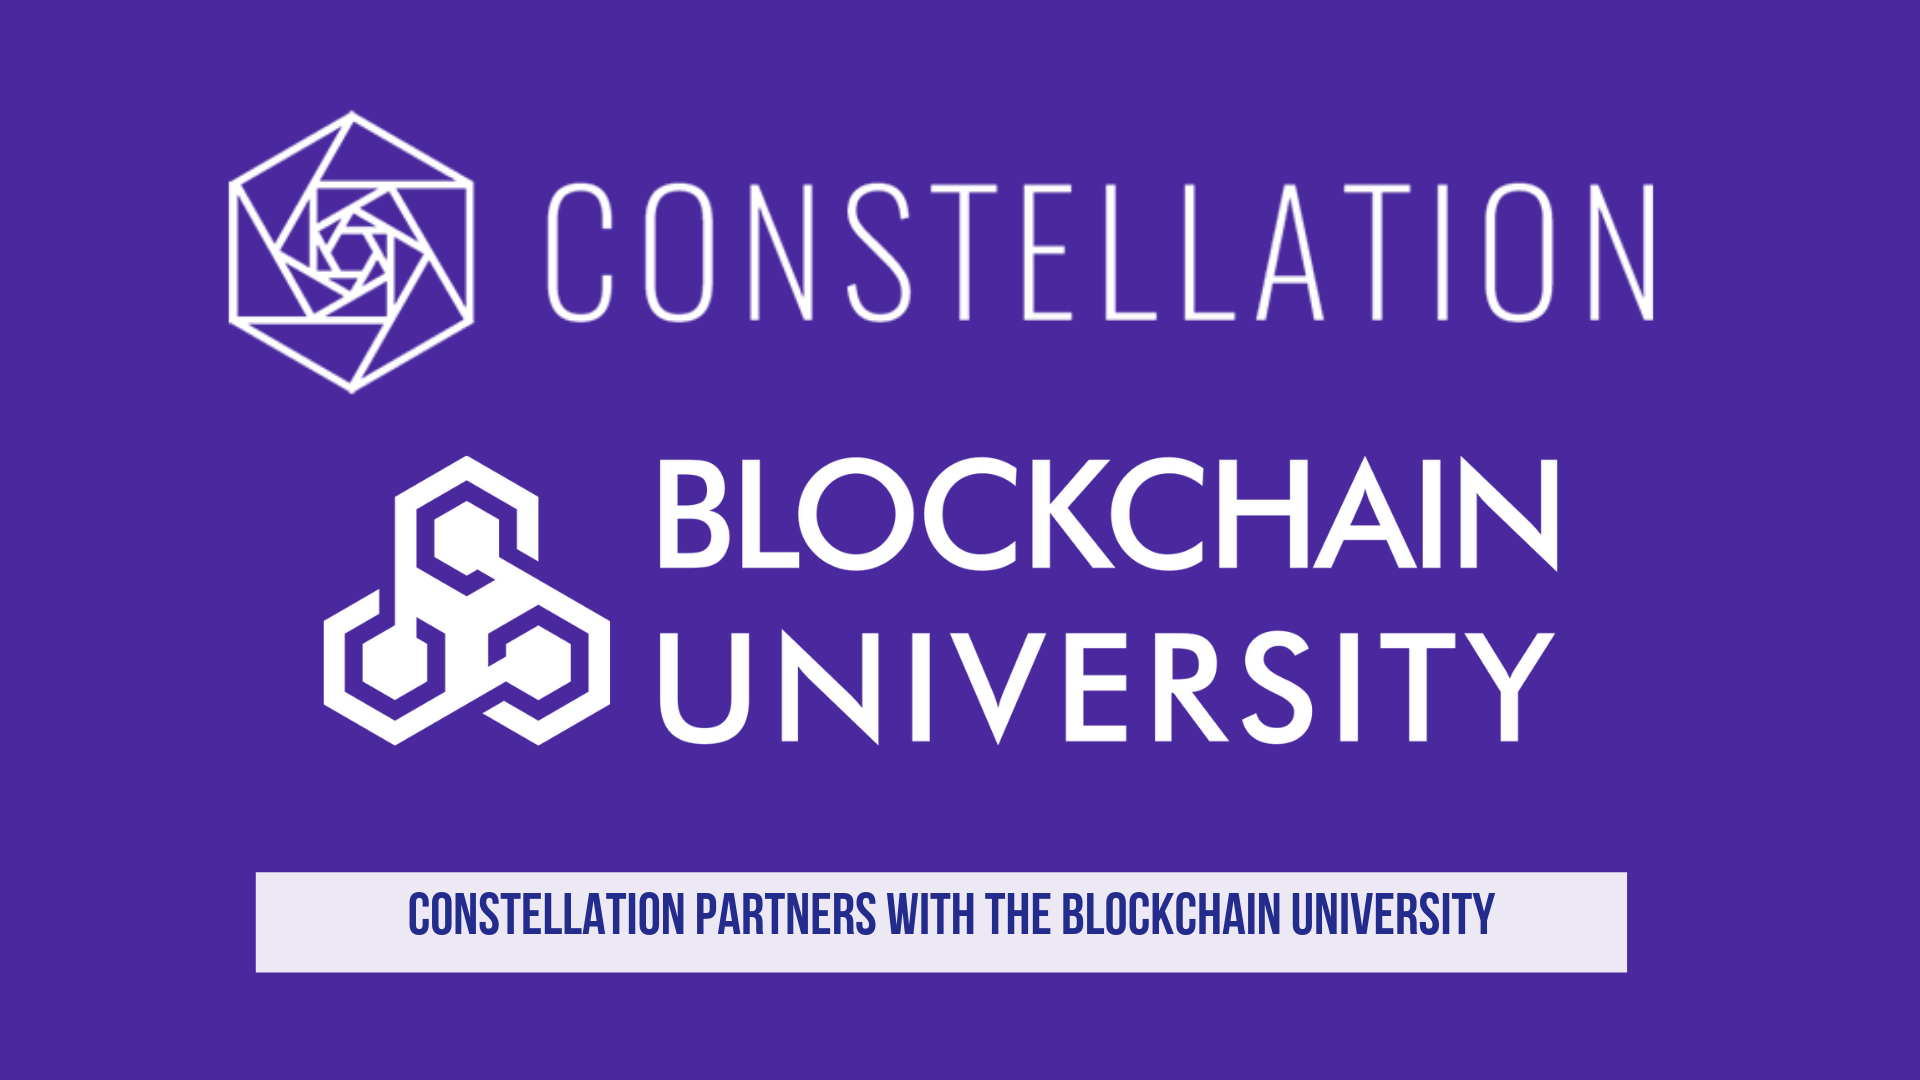 Constellation Partners with The Blockchain University